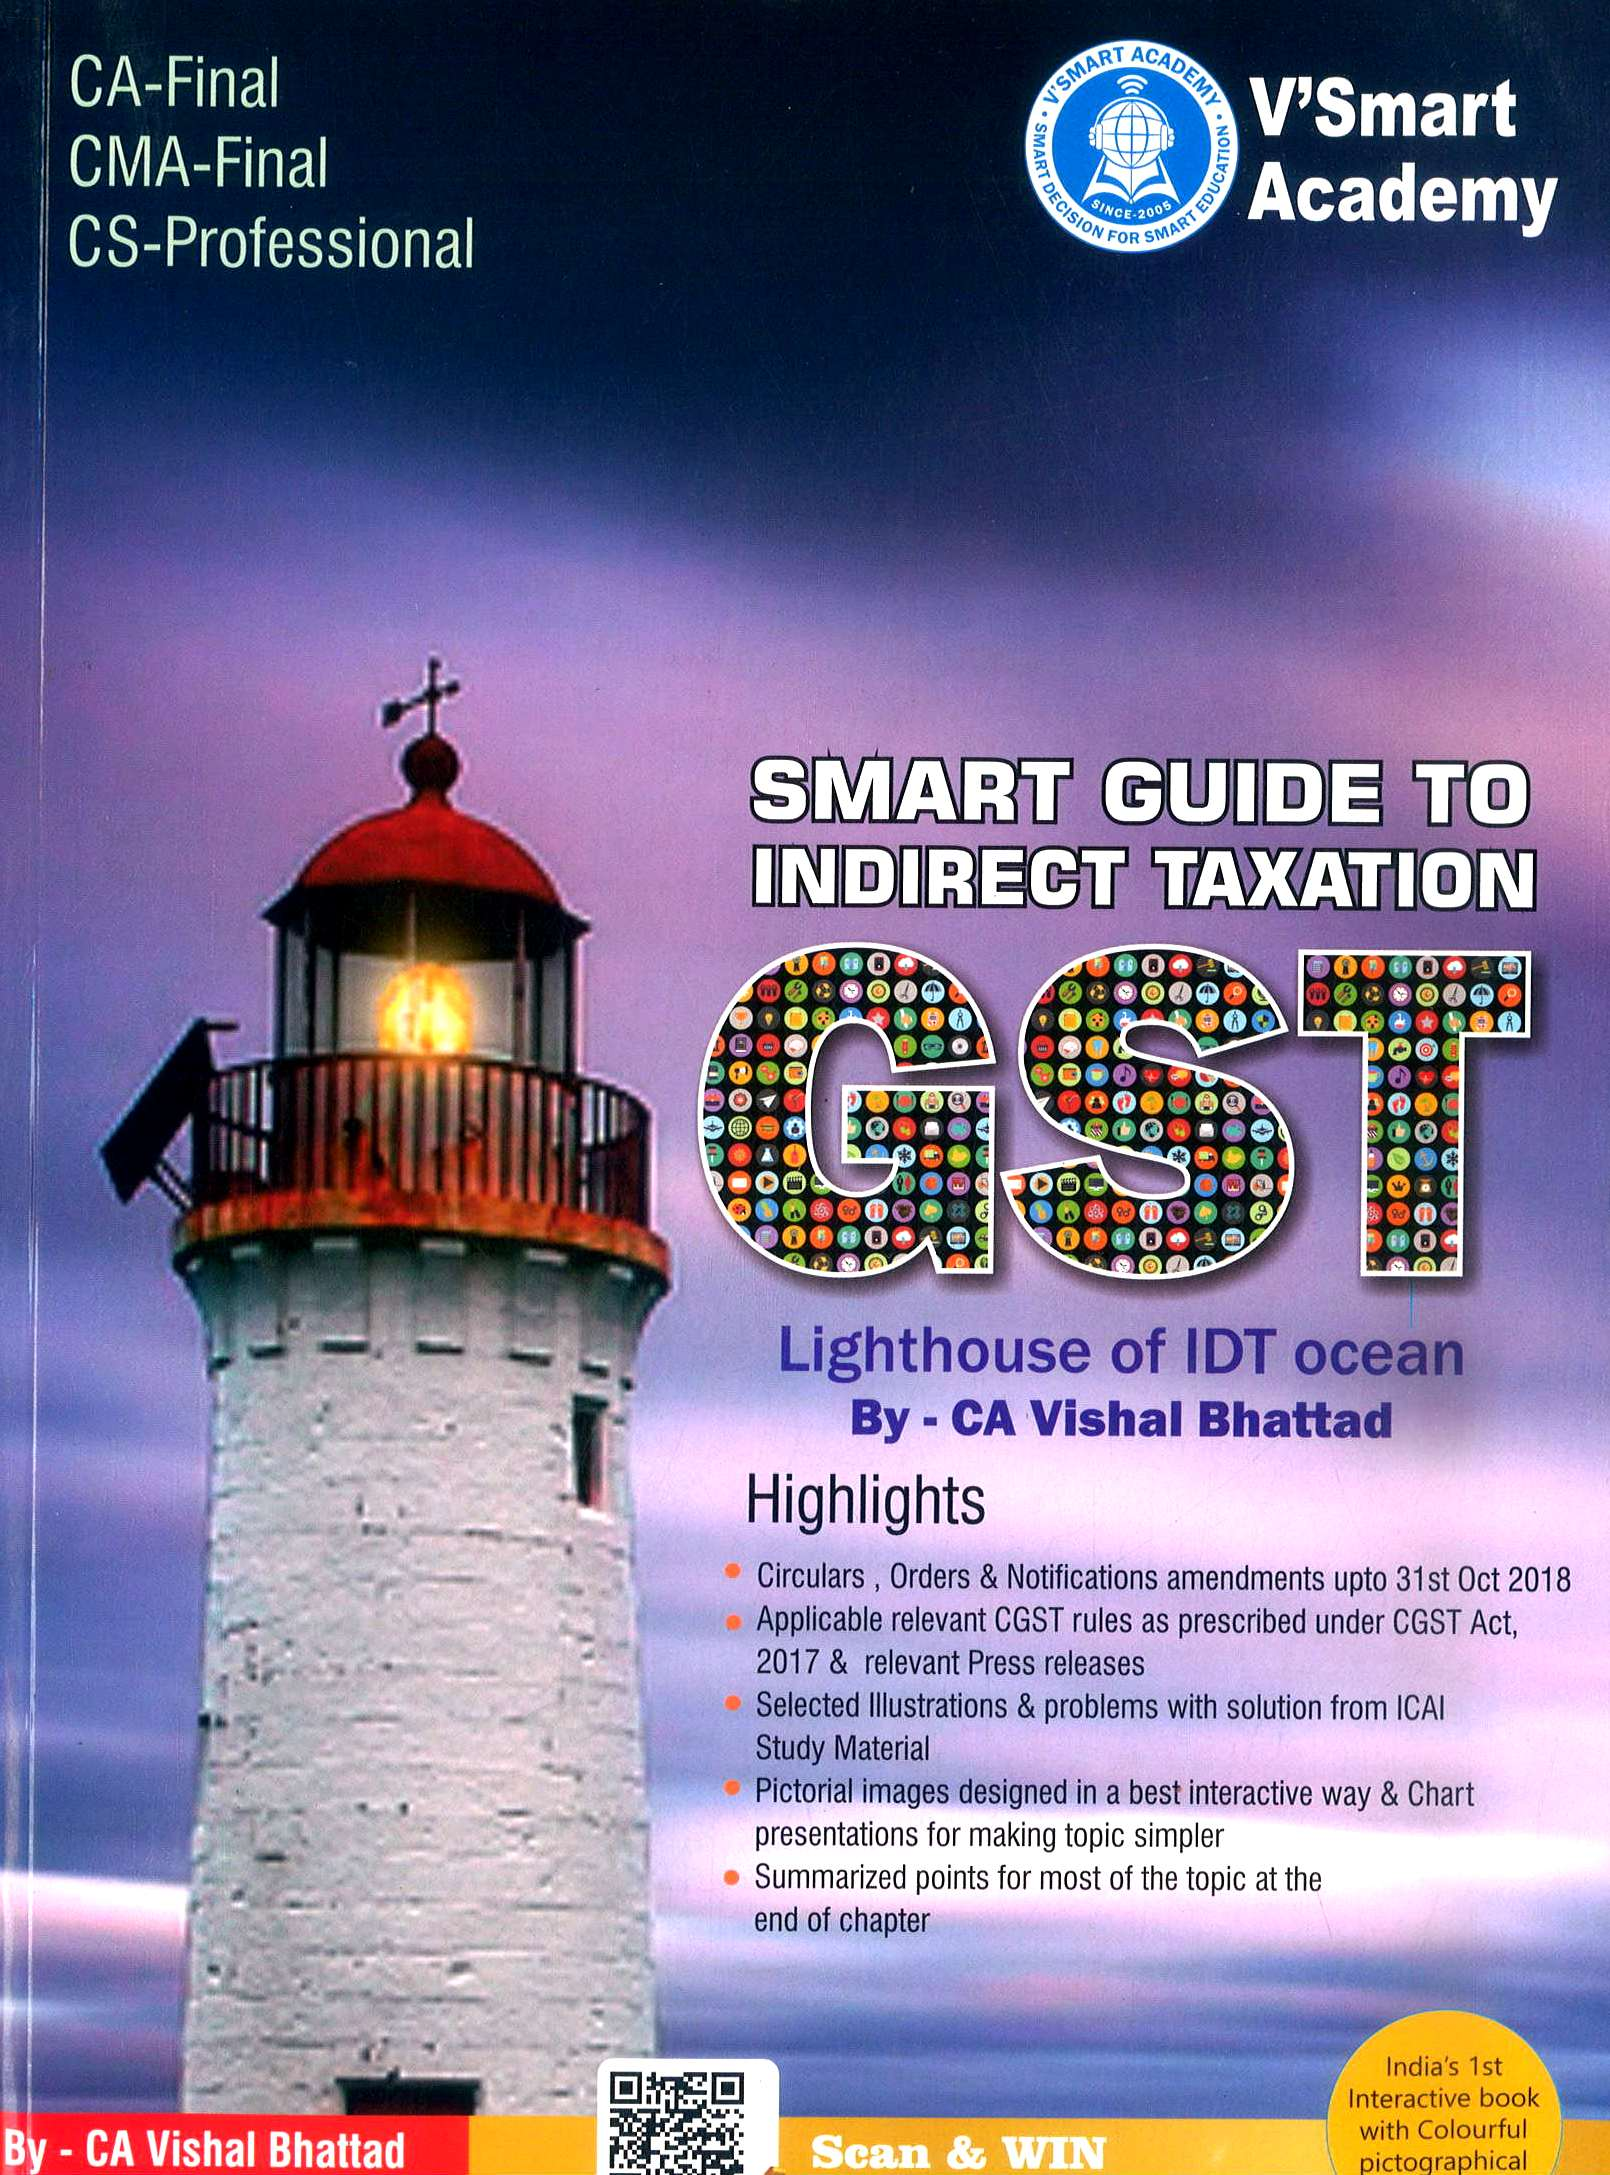 MakeMyDelivery VSmart Smart Guide to Indirect Taxation GST Comprehensive In-Depth Guide for CA Final Old and New Syllabus By CA Vishal Bhattad Applicable for May 2019 Exams